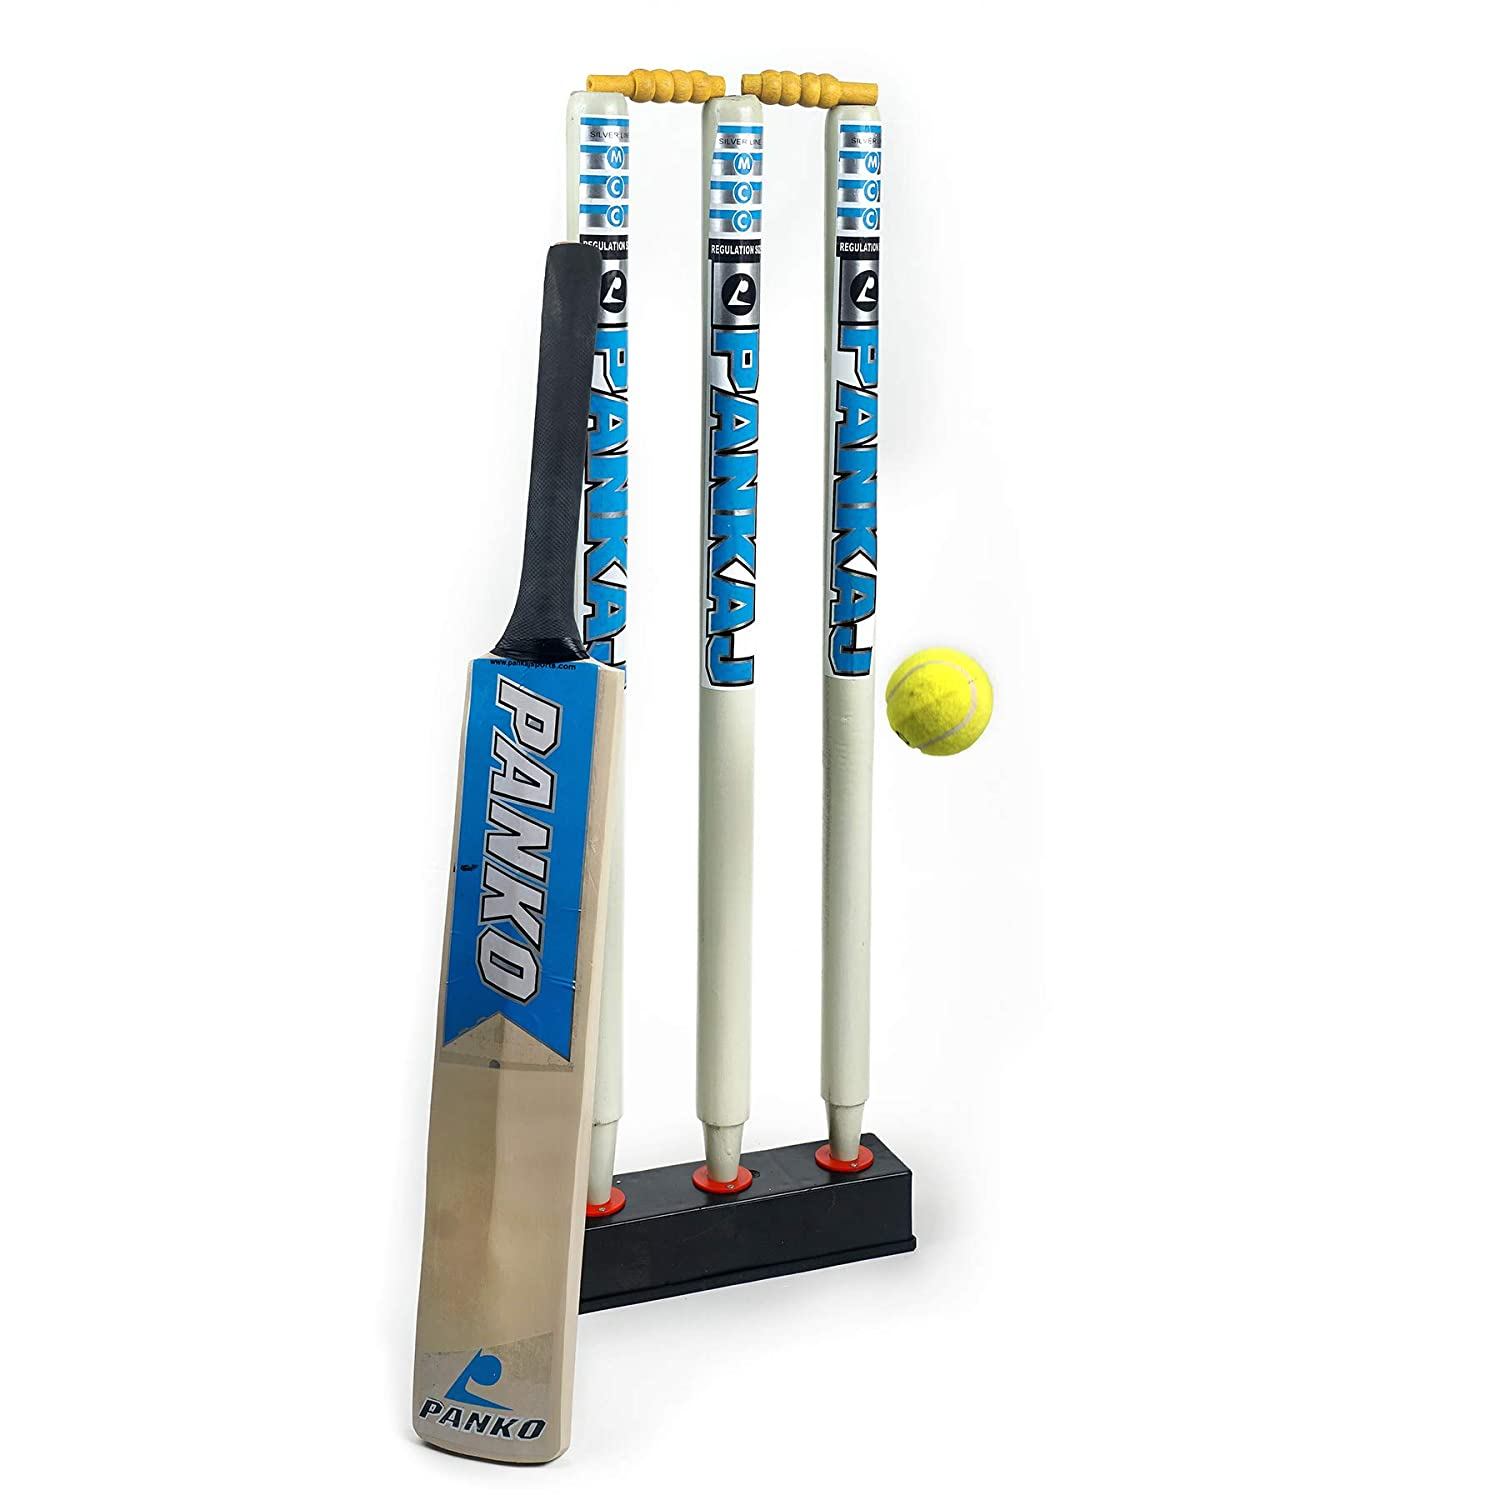 Cricket Stump Set (Blue) - Stumps + Stand + Bat + Ball